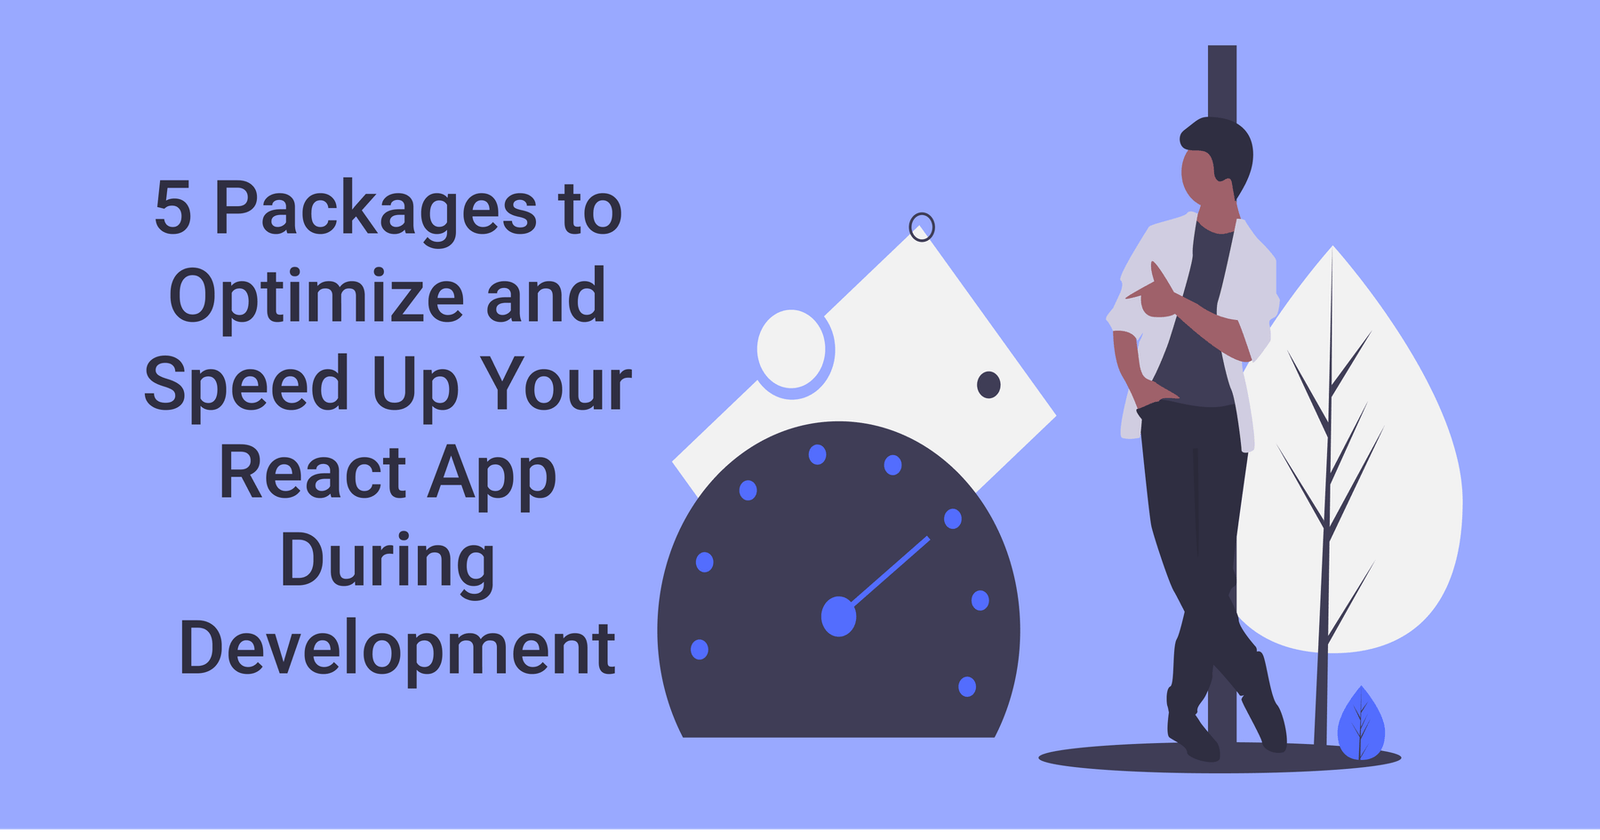 5 Packages to Optimize and Speed Up Your React App During Development